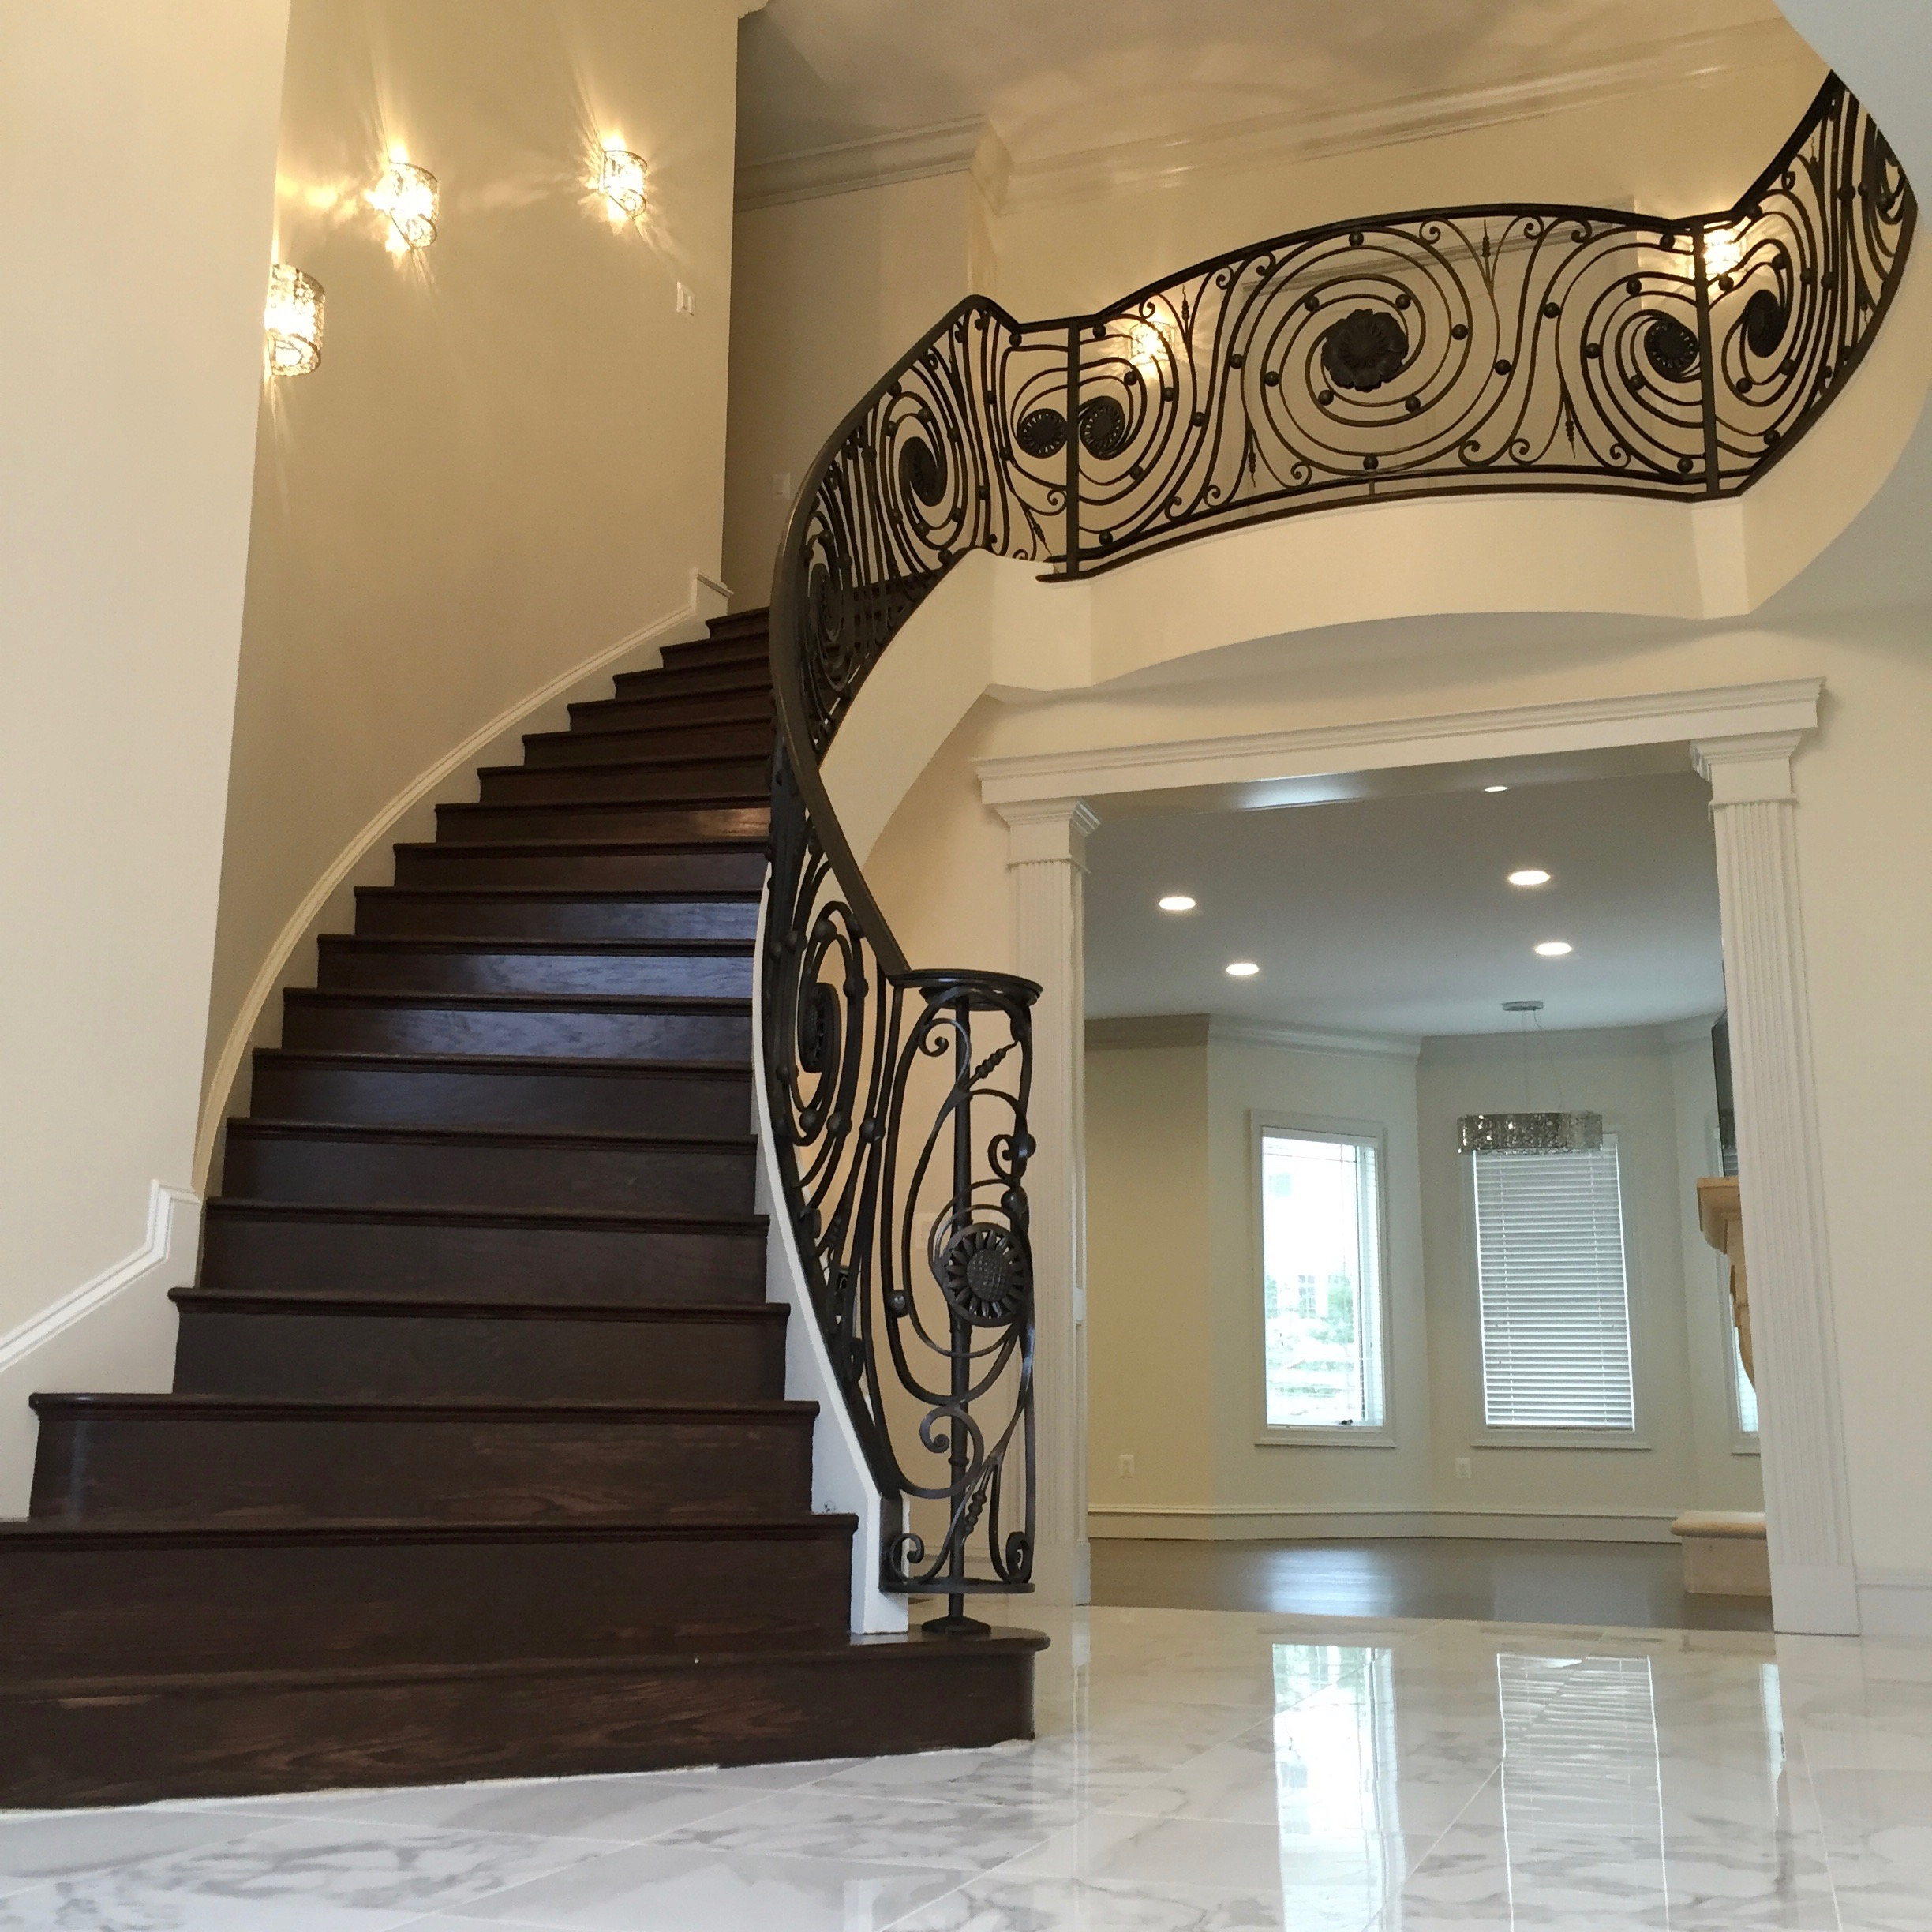 Ornate railing hugs this beautiful staircase